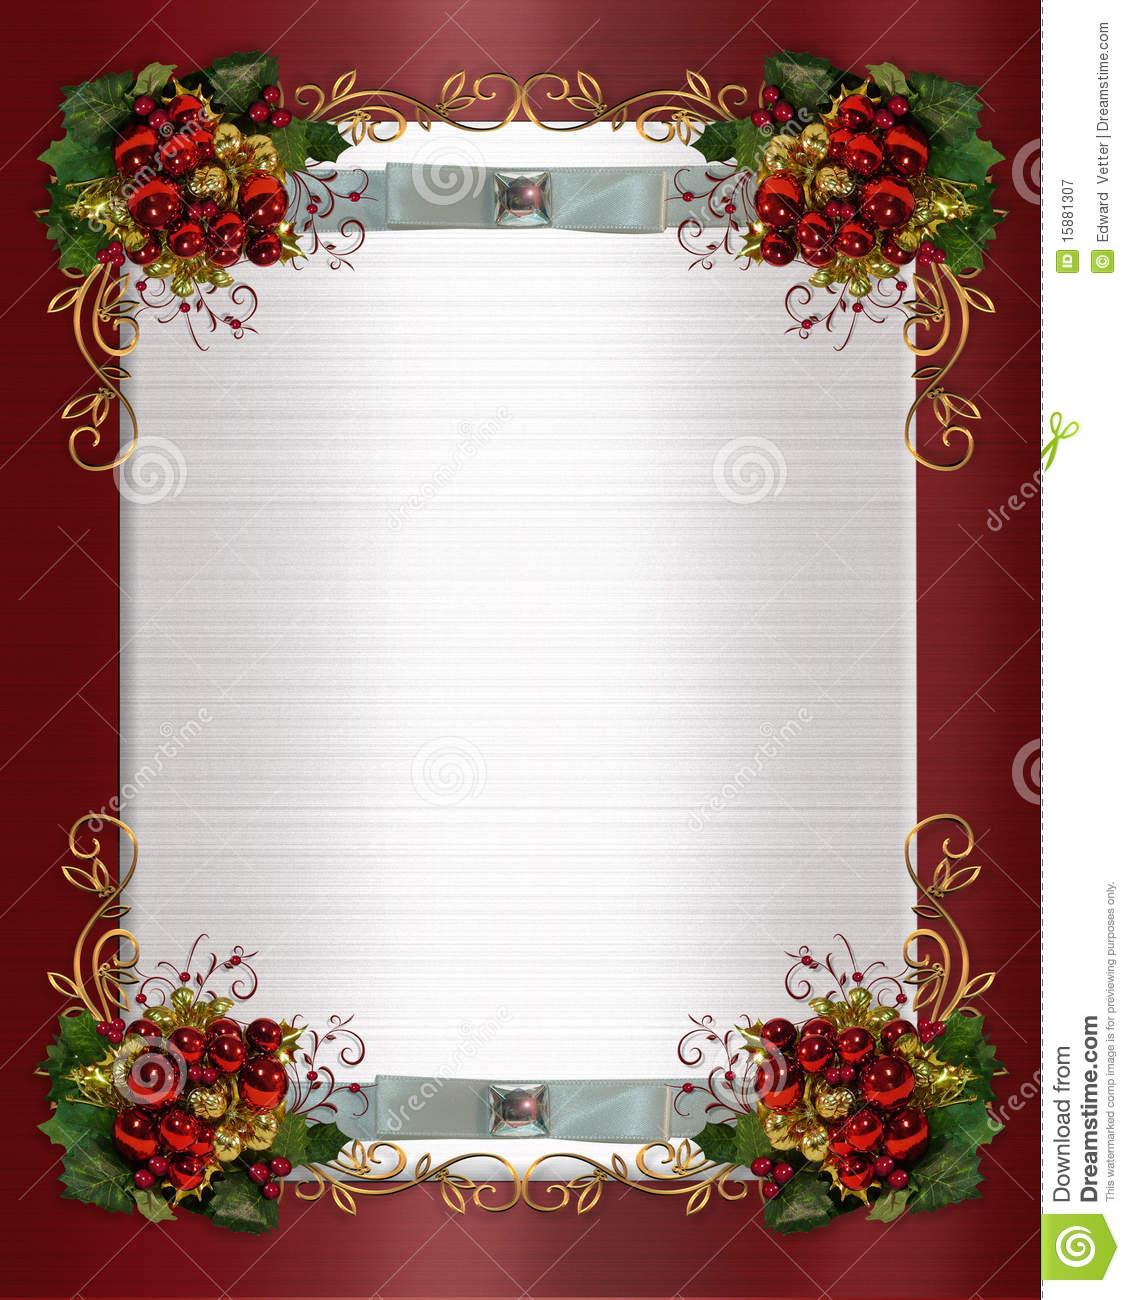 christmas invitation templates free download printable holiday borders view original. Black Bedroom Furniture Sets. Home Design Ideas